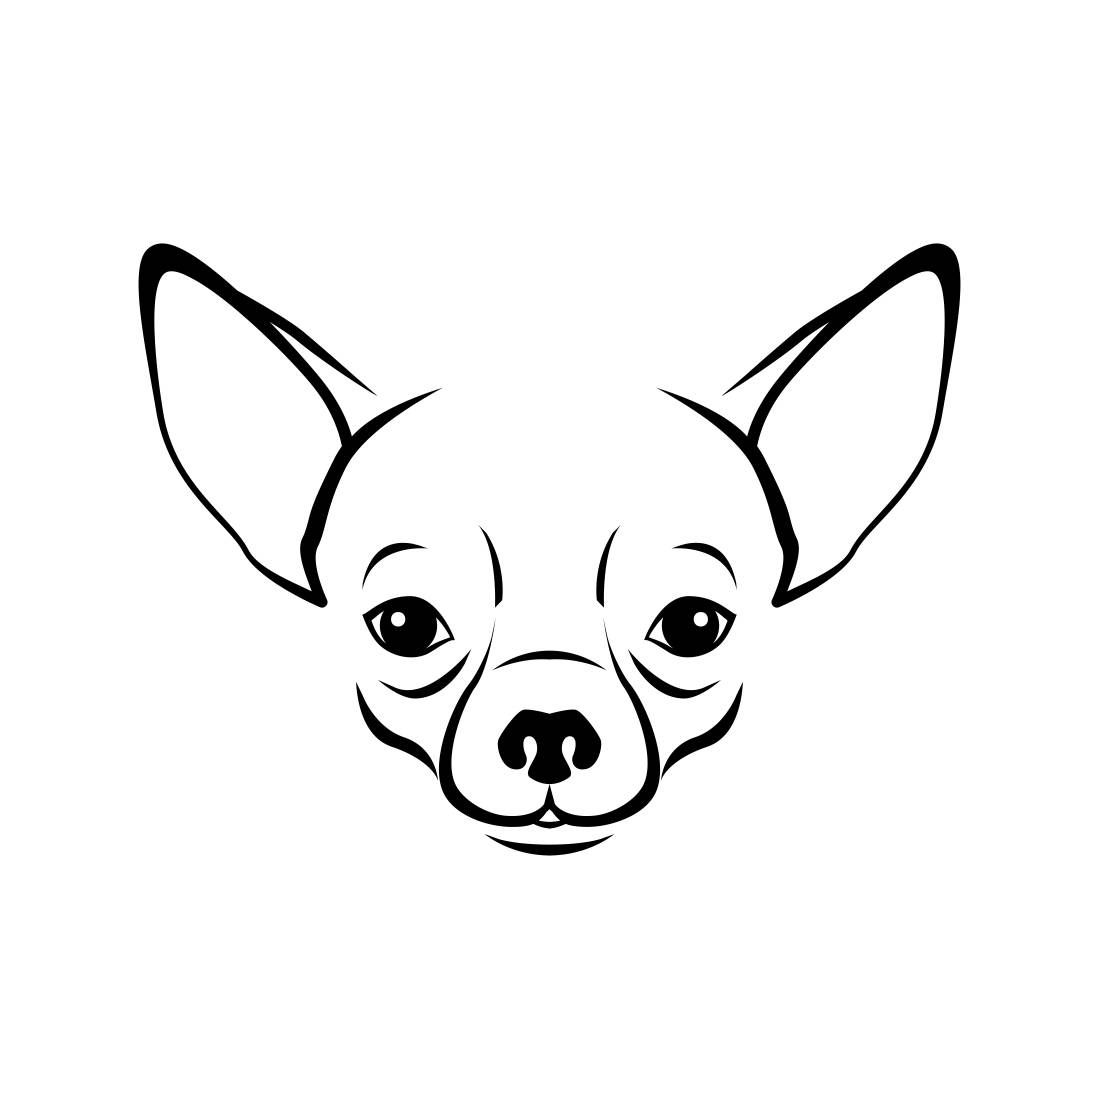 Chihuahua clipart svg. Dog head graphics dxf